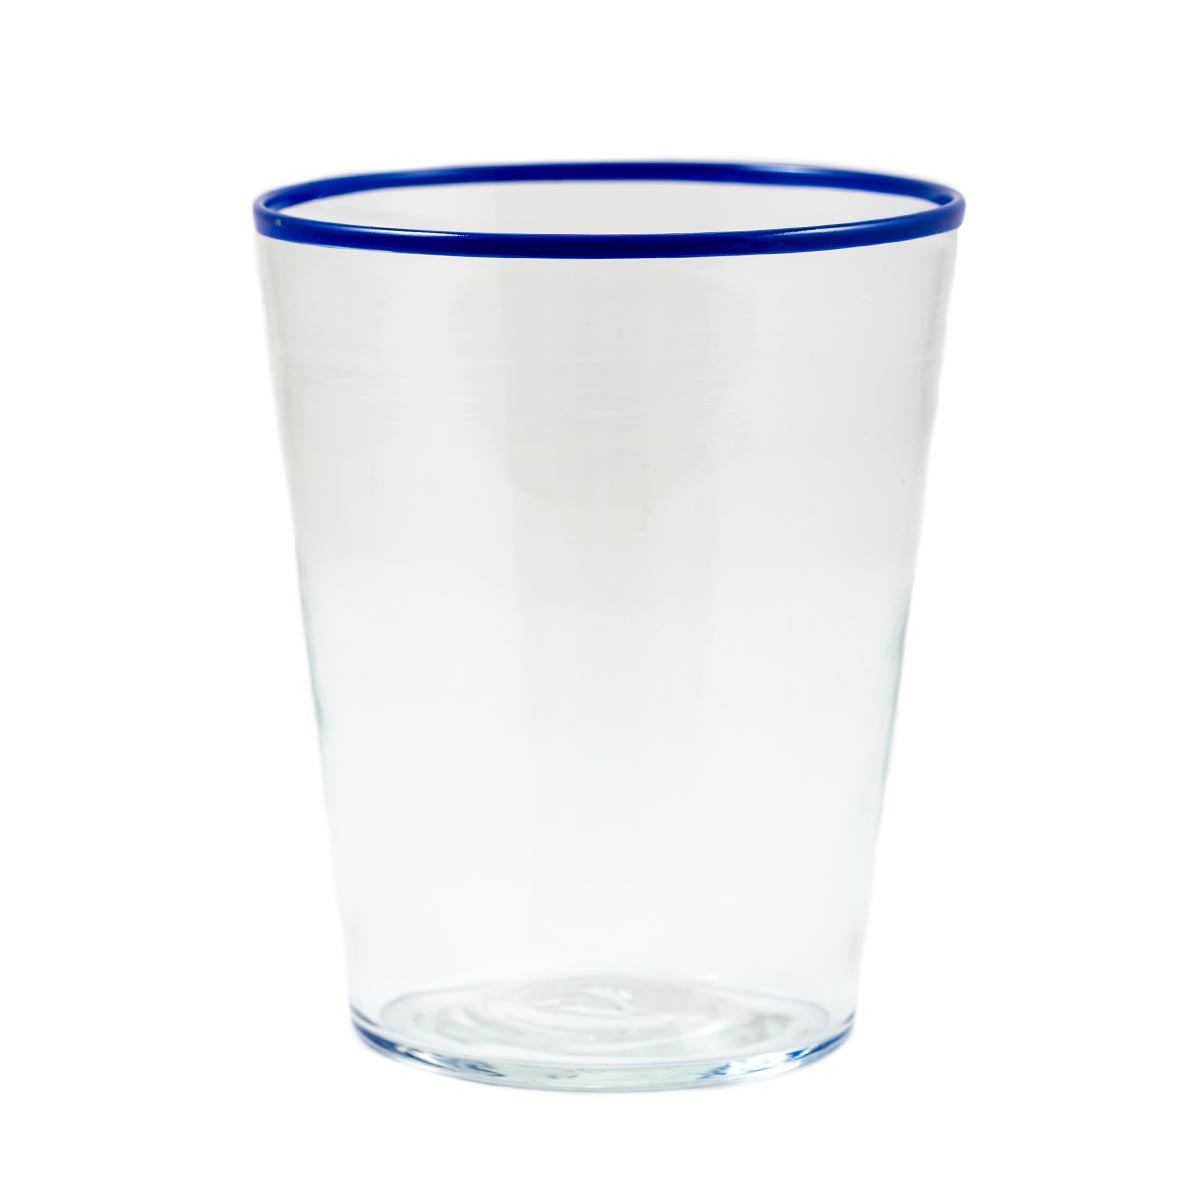 summer-vaso-glass-murano-blue-rim-crystal-design-giberto-venice